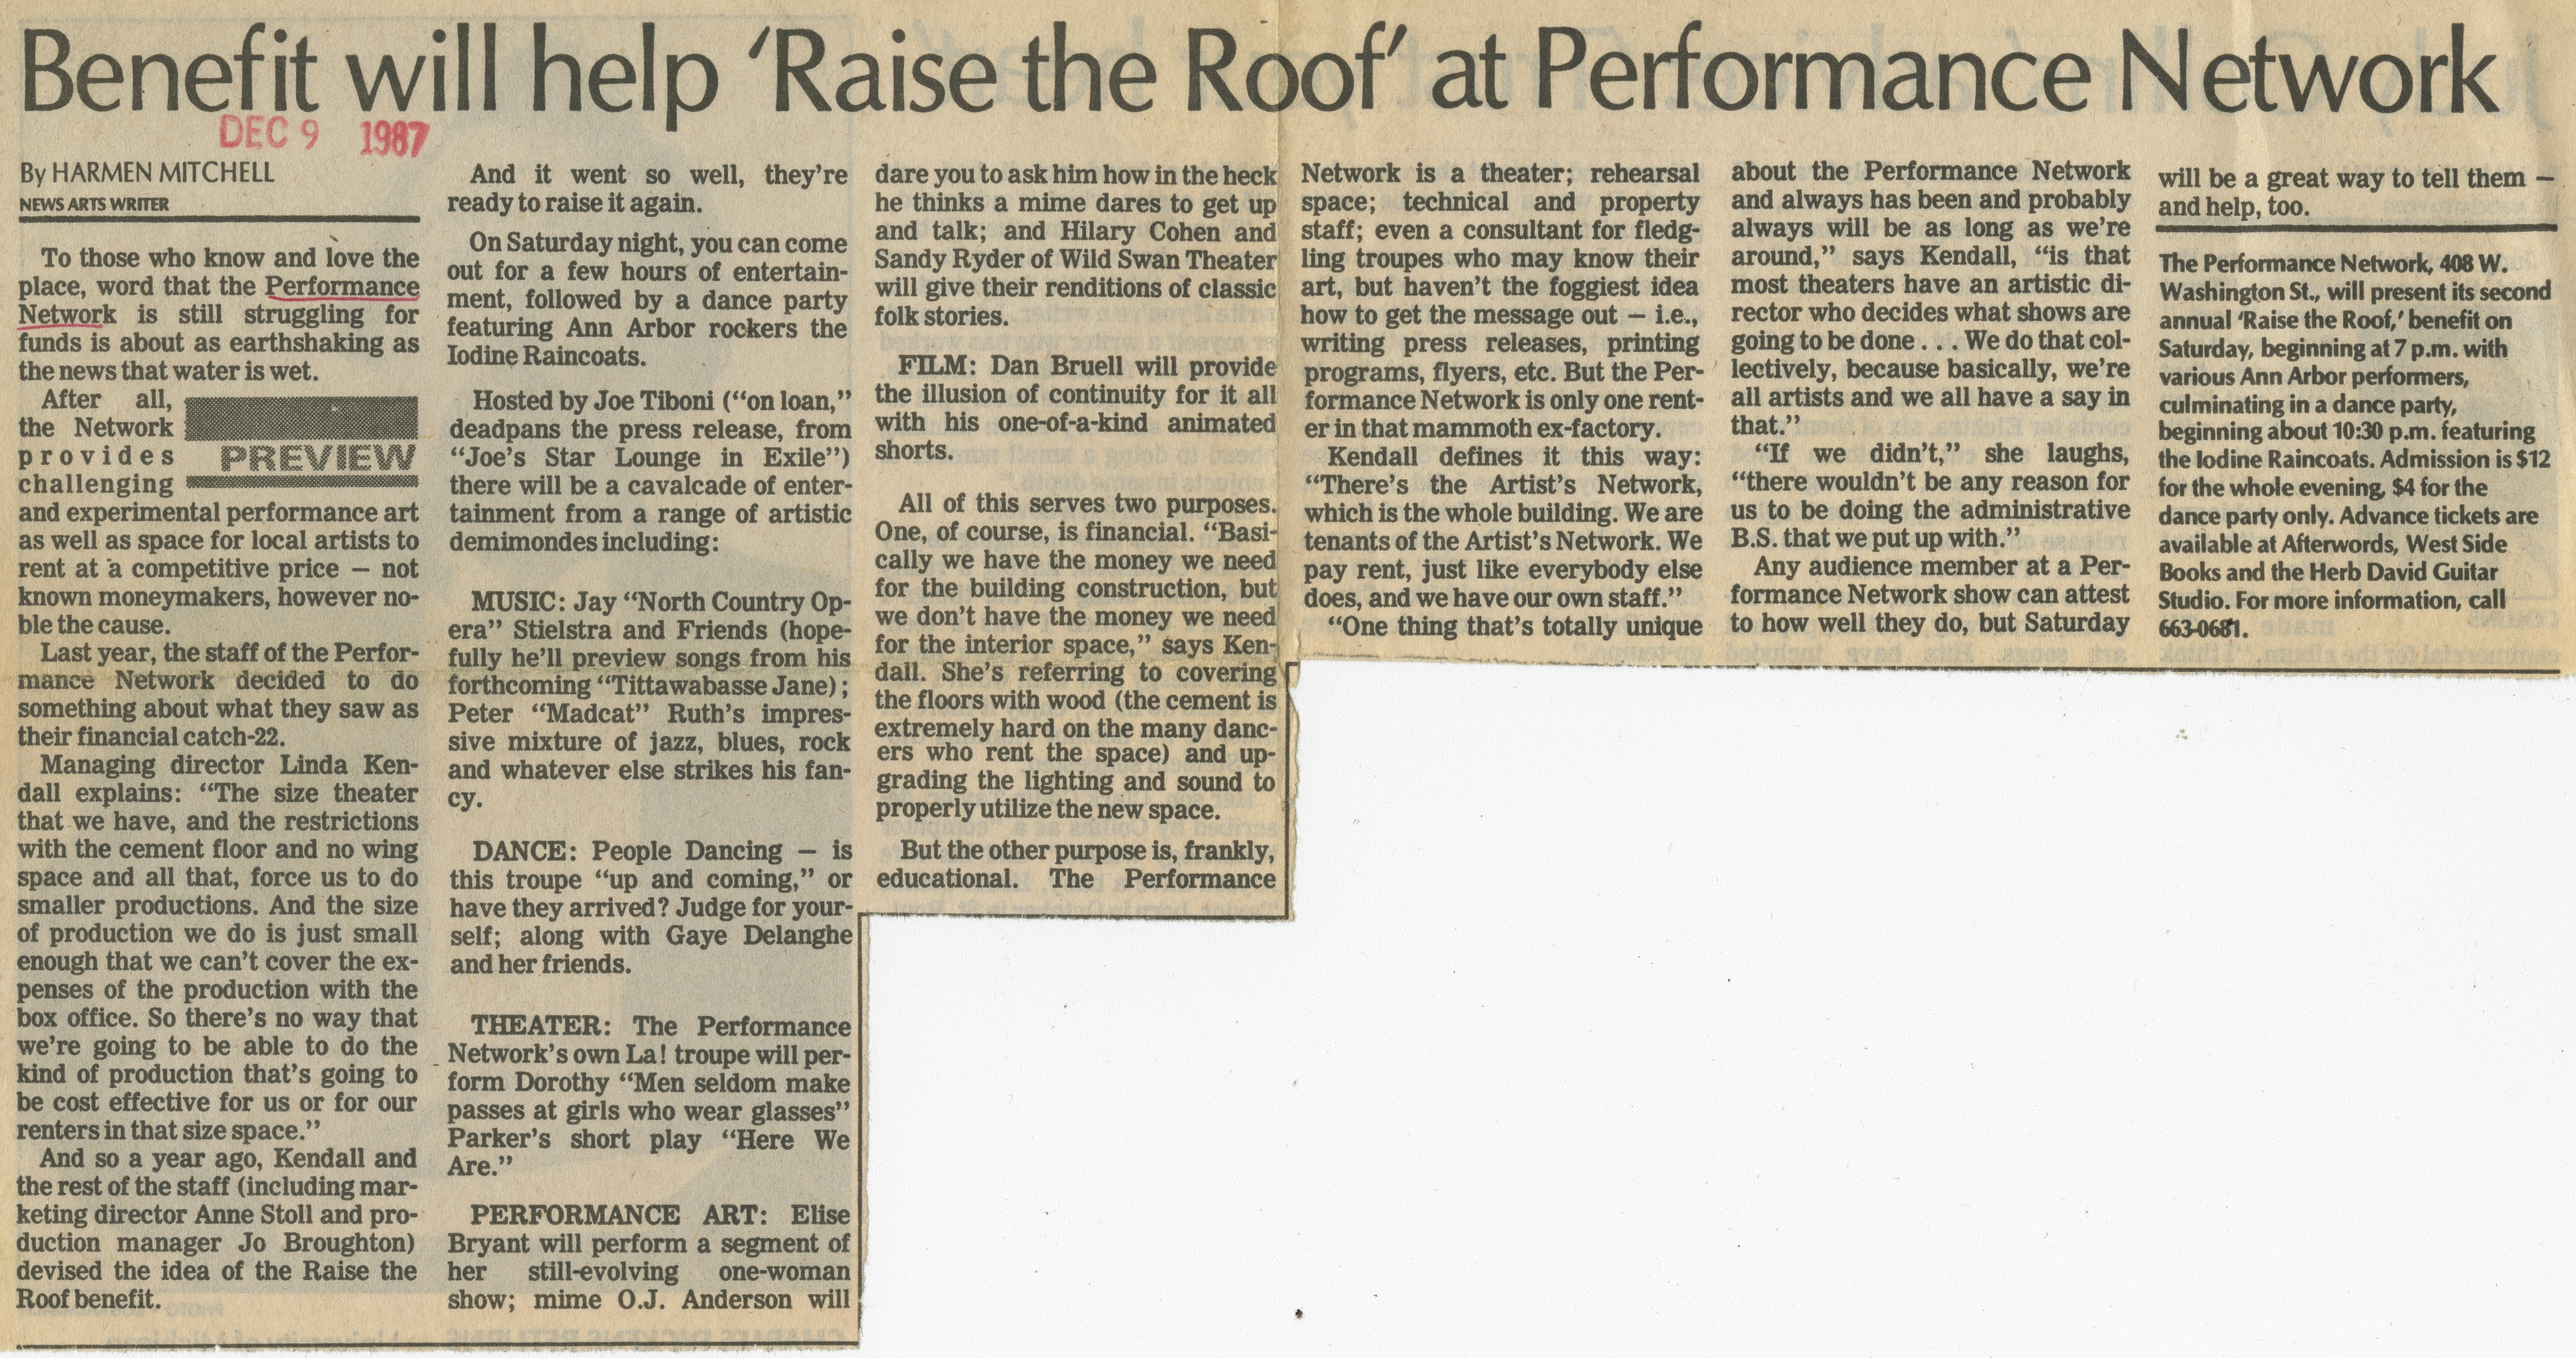 Benefit will help 'Raise the Roof' at Performance Network image